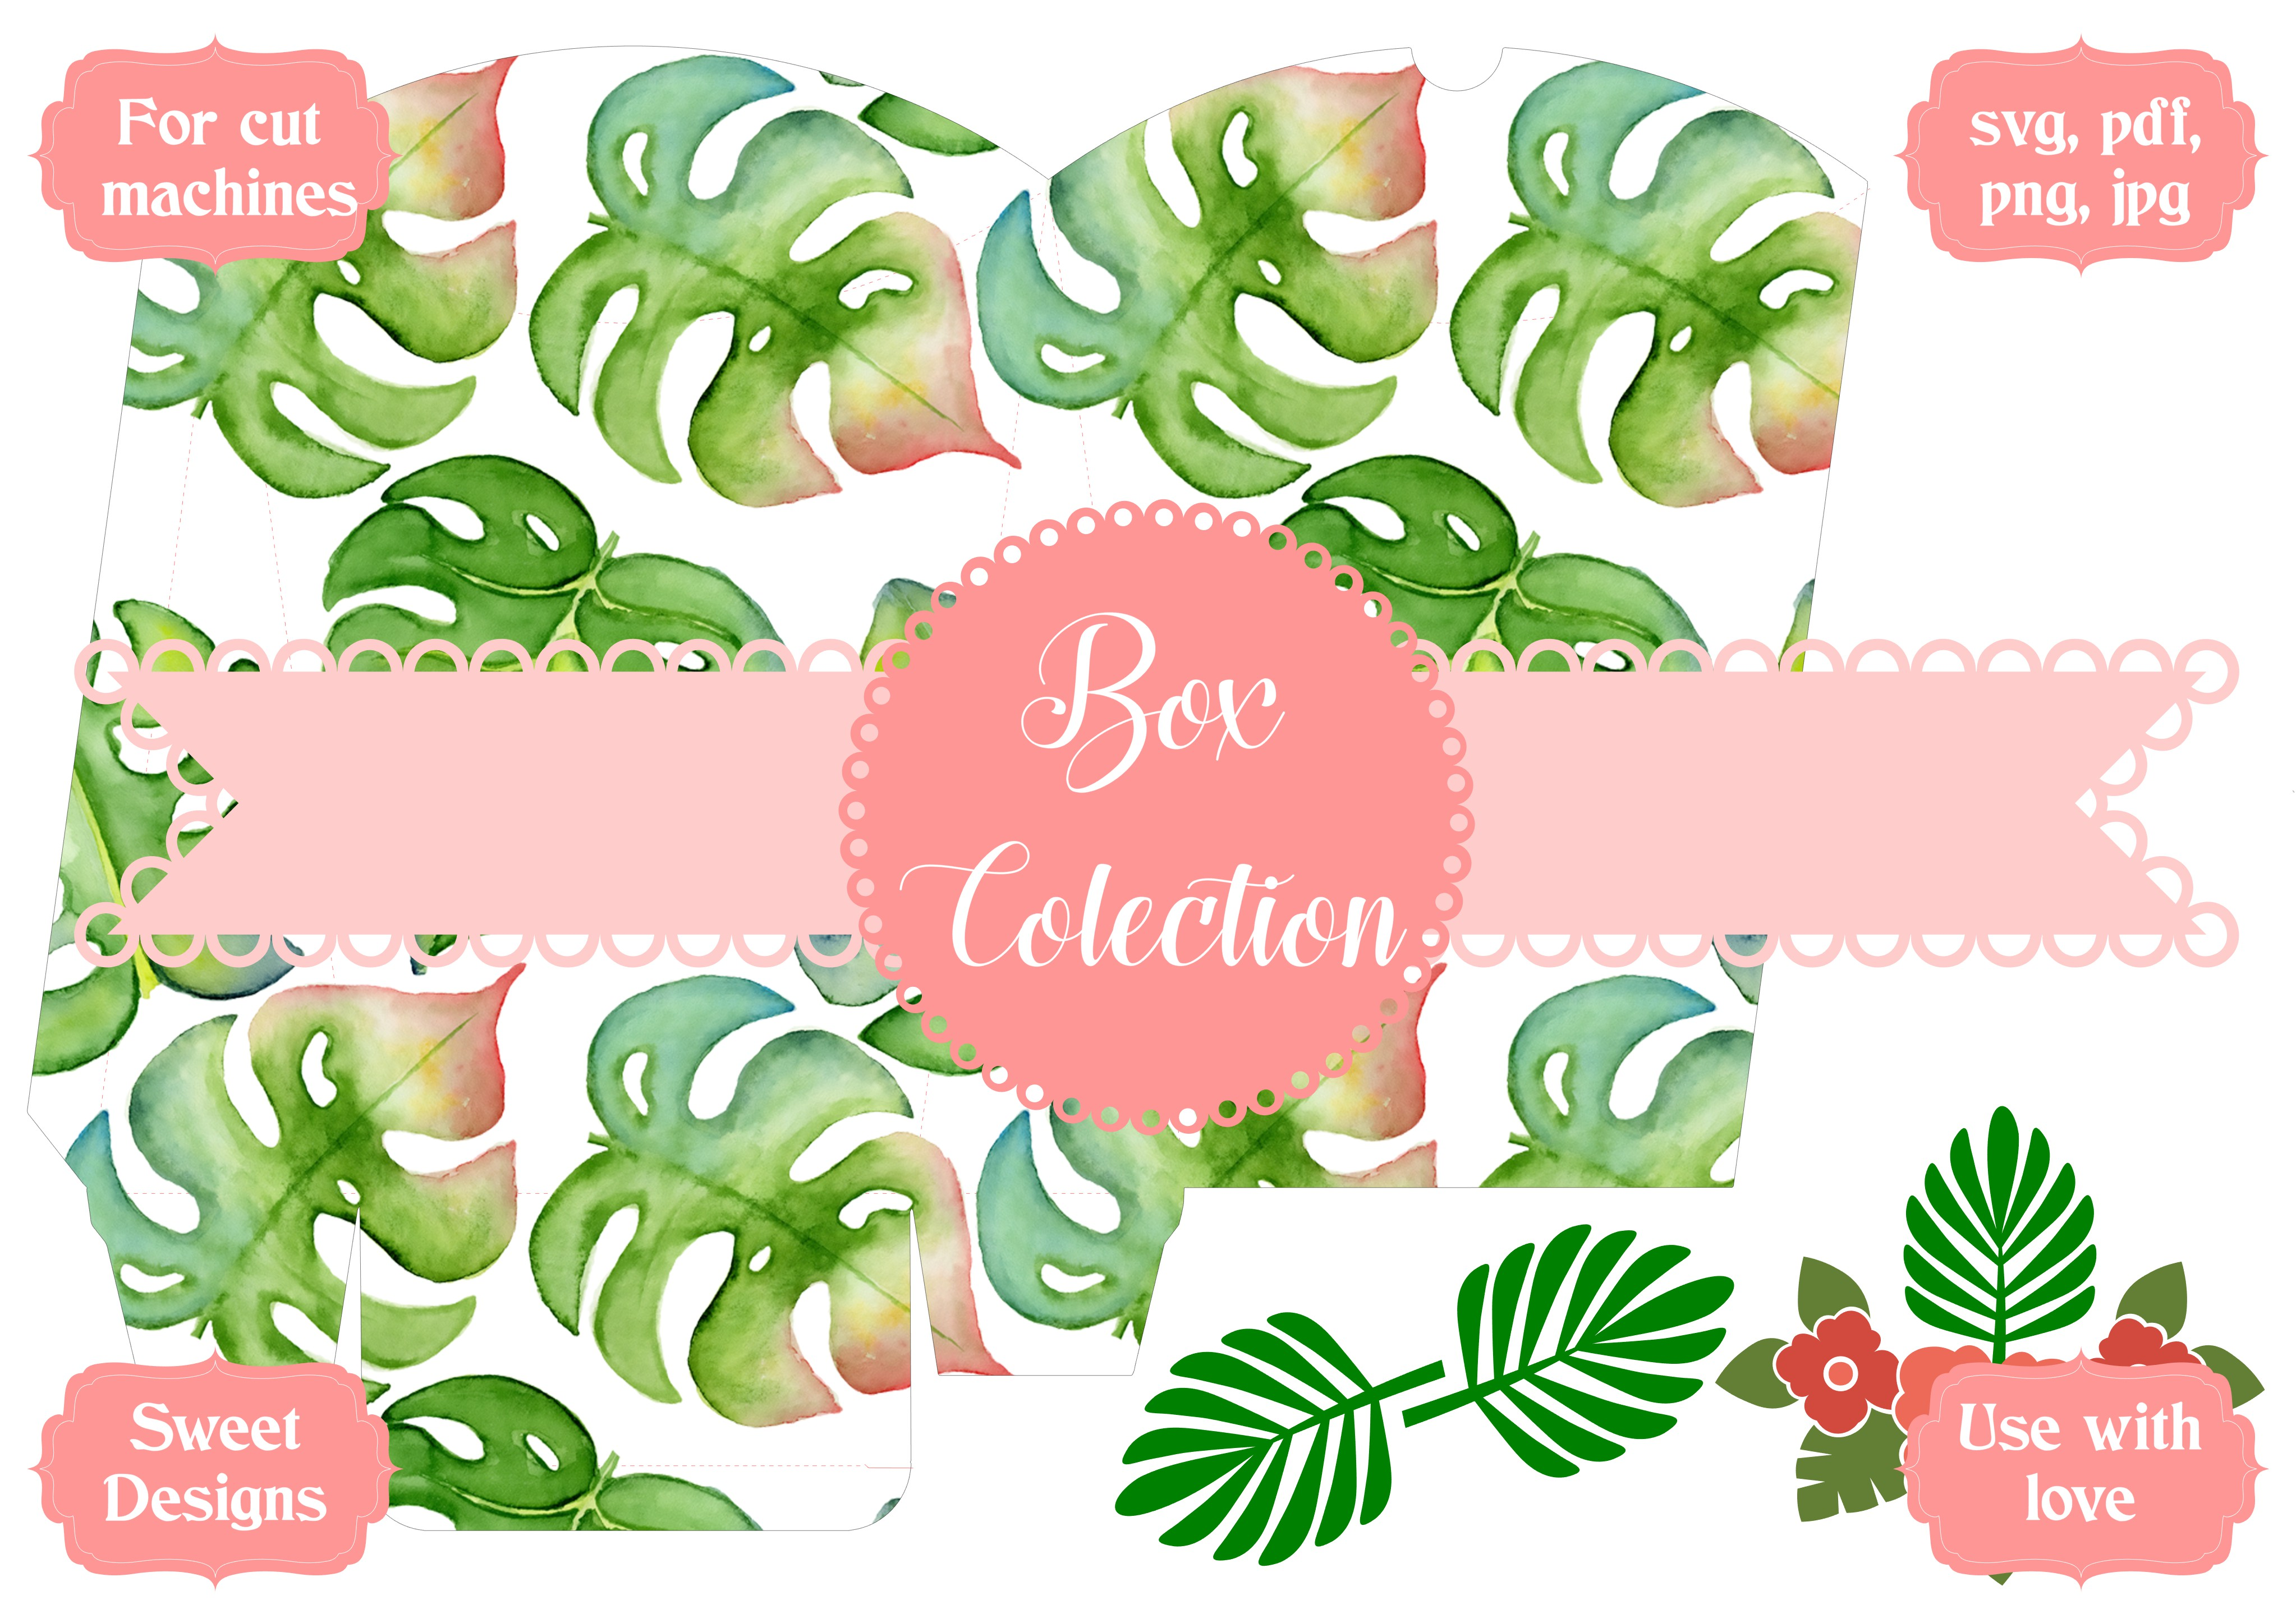 Download Free Tropical Box Graphic By Jgalluccio Creative Fabrica for Cricut Explore, Silhouette and other cutting machines.